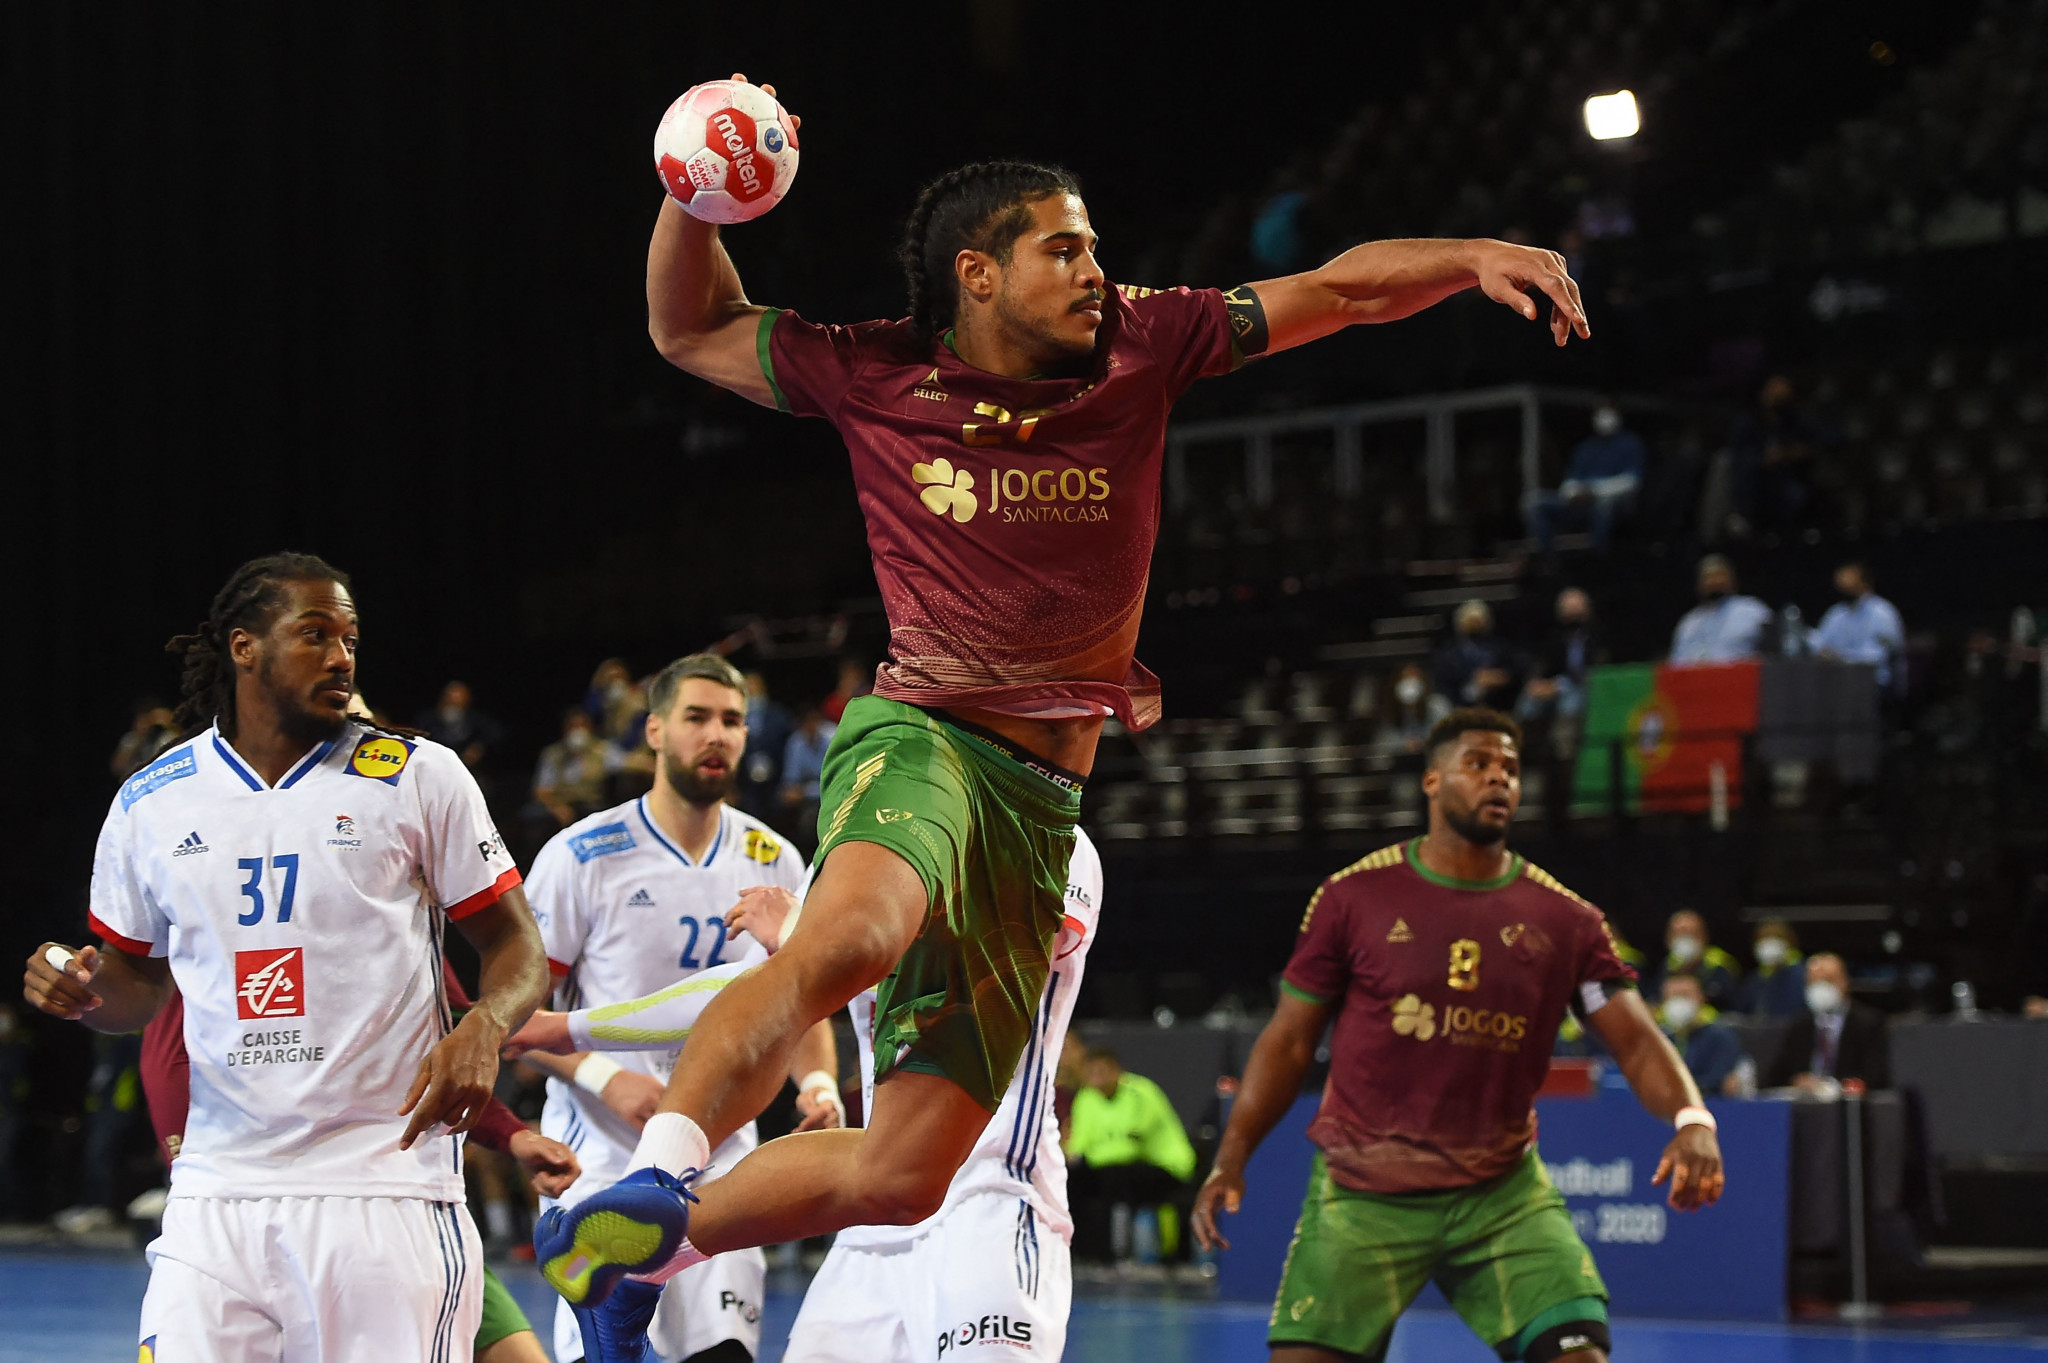 Portugal claimed their place in the Tokyo 2020 men's handball tournament after a dramatic win against France ©Getty Images